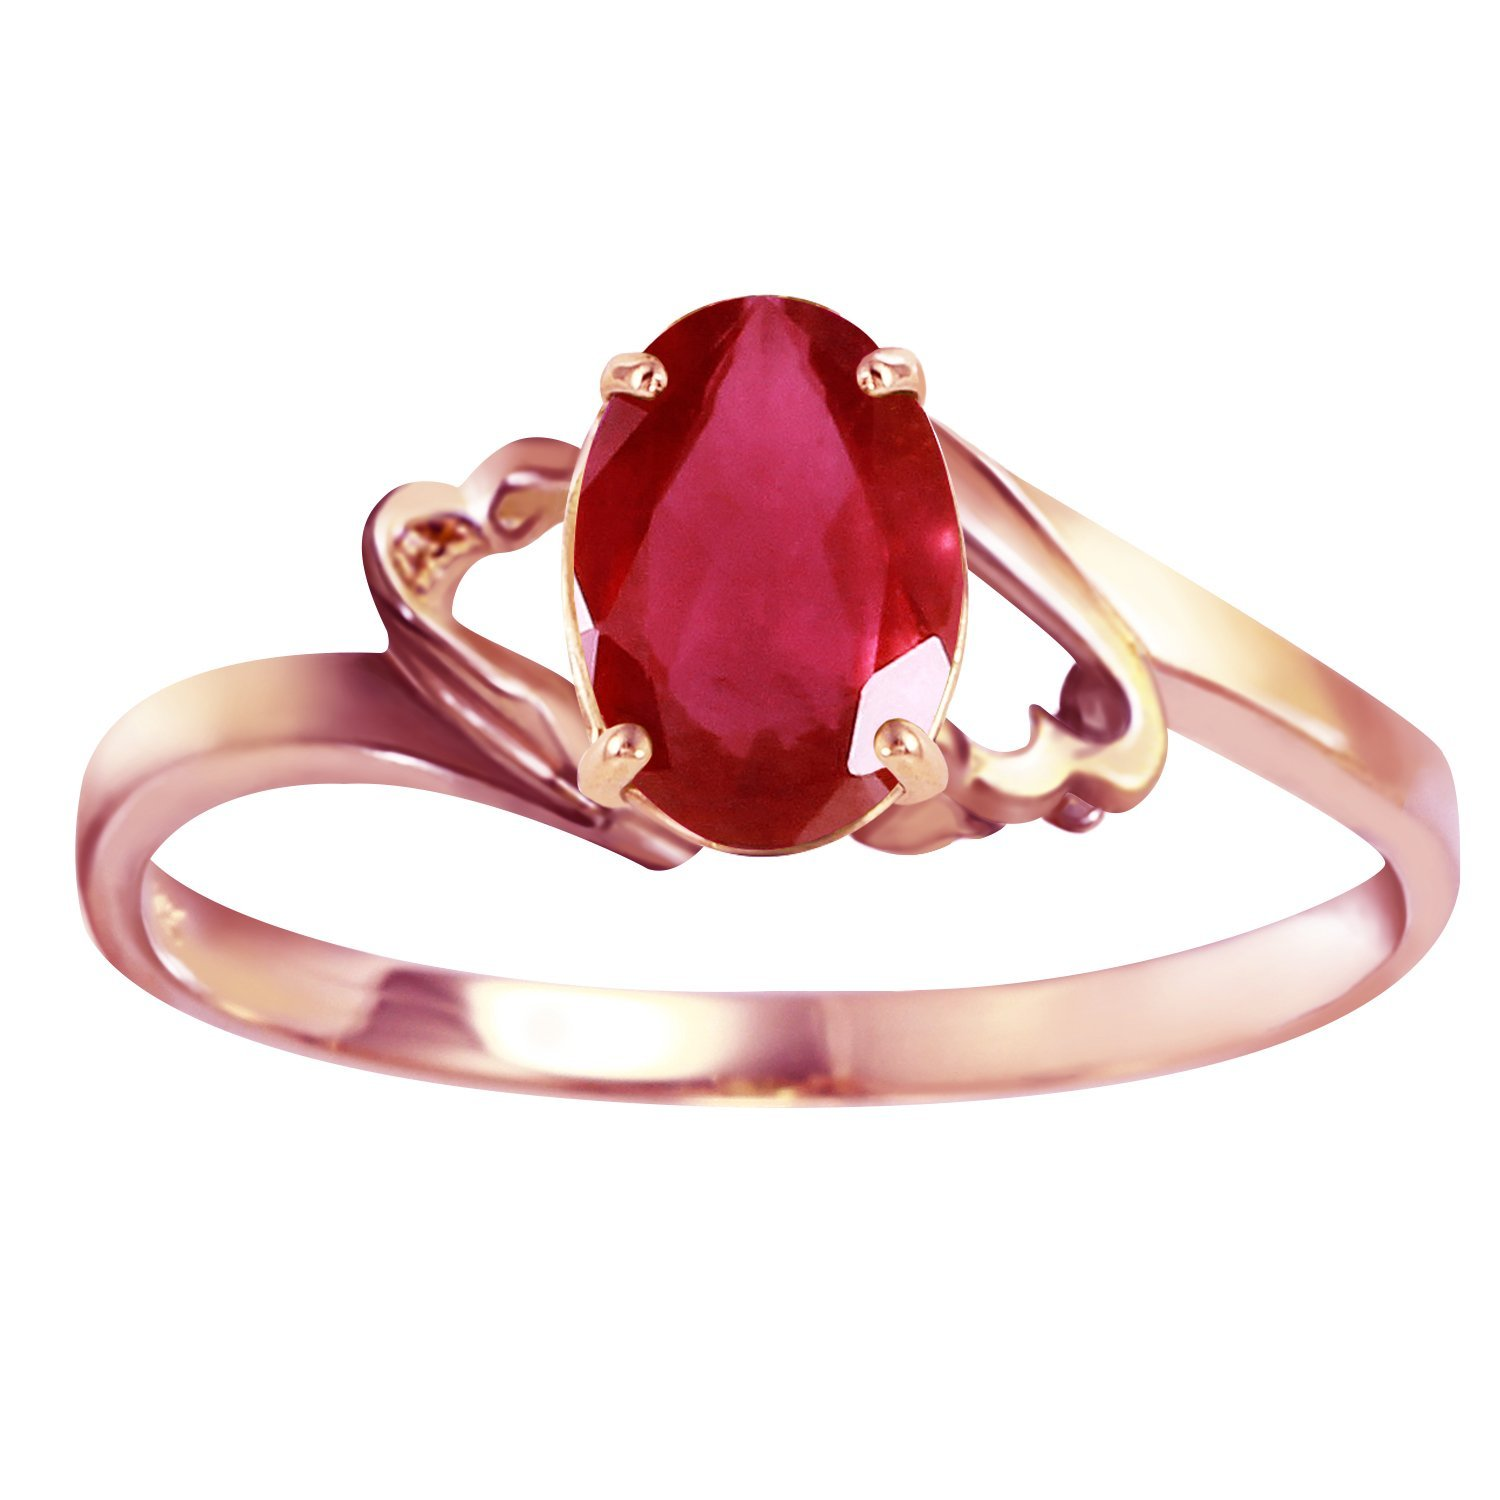 1.15 Carat 14k Solid Rose Gold Ring with Natural Oval-Shaped Ruby - Size 8.5